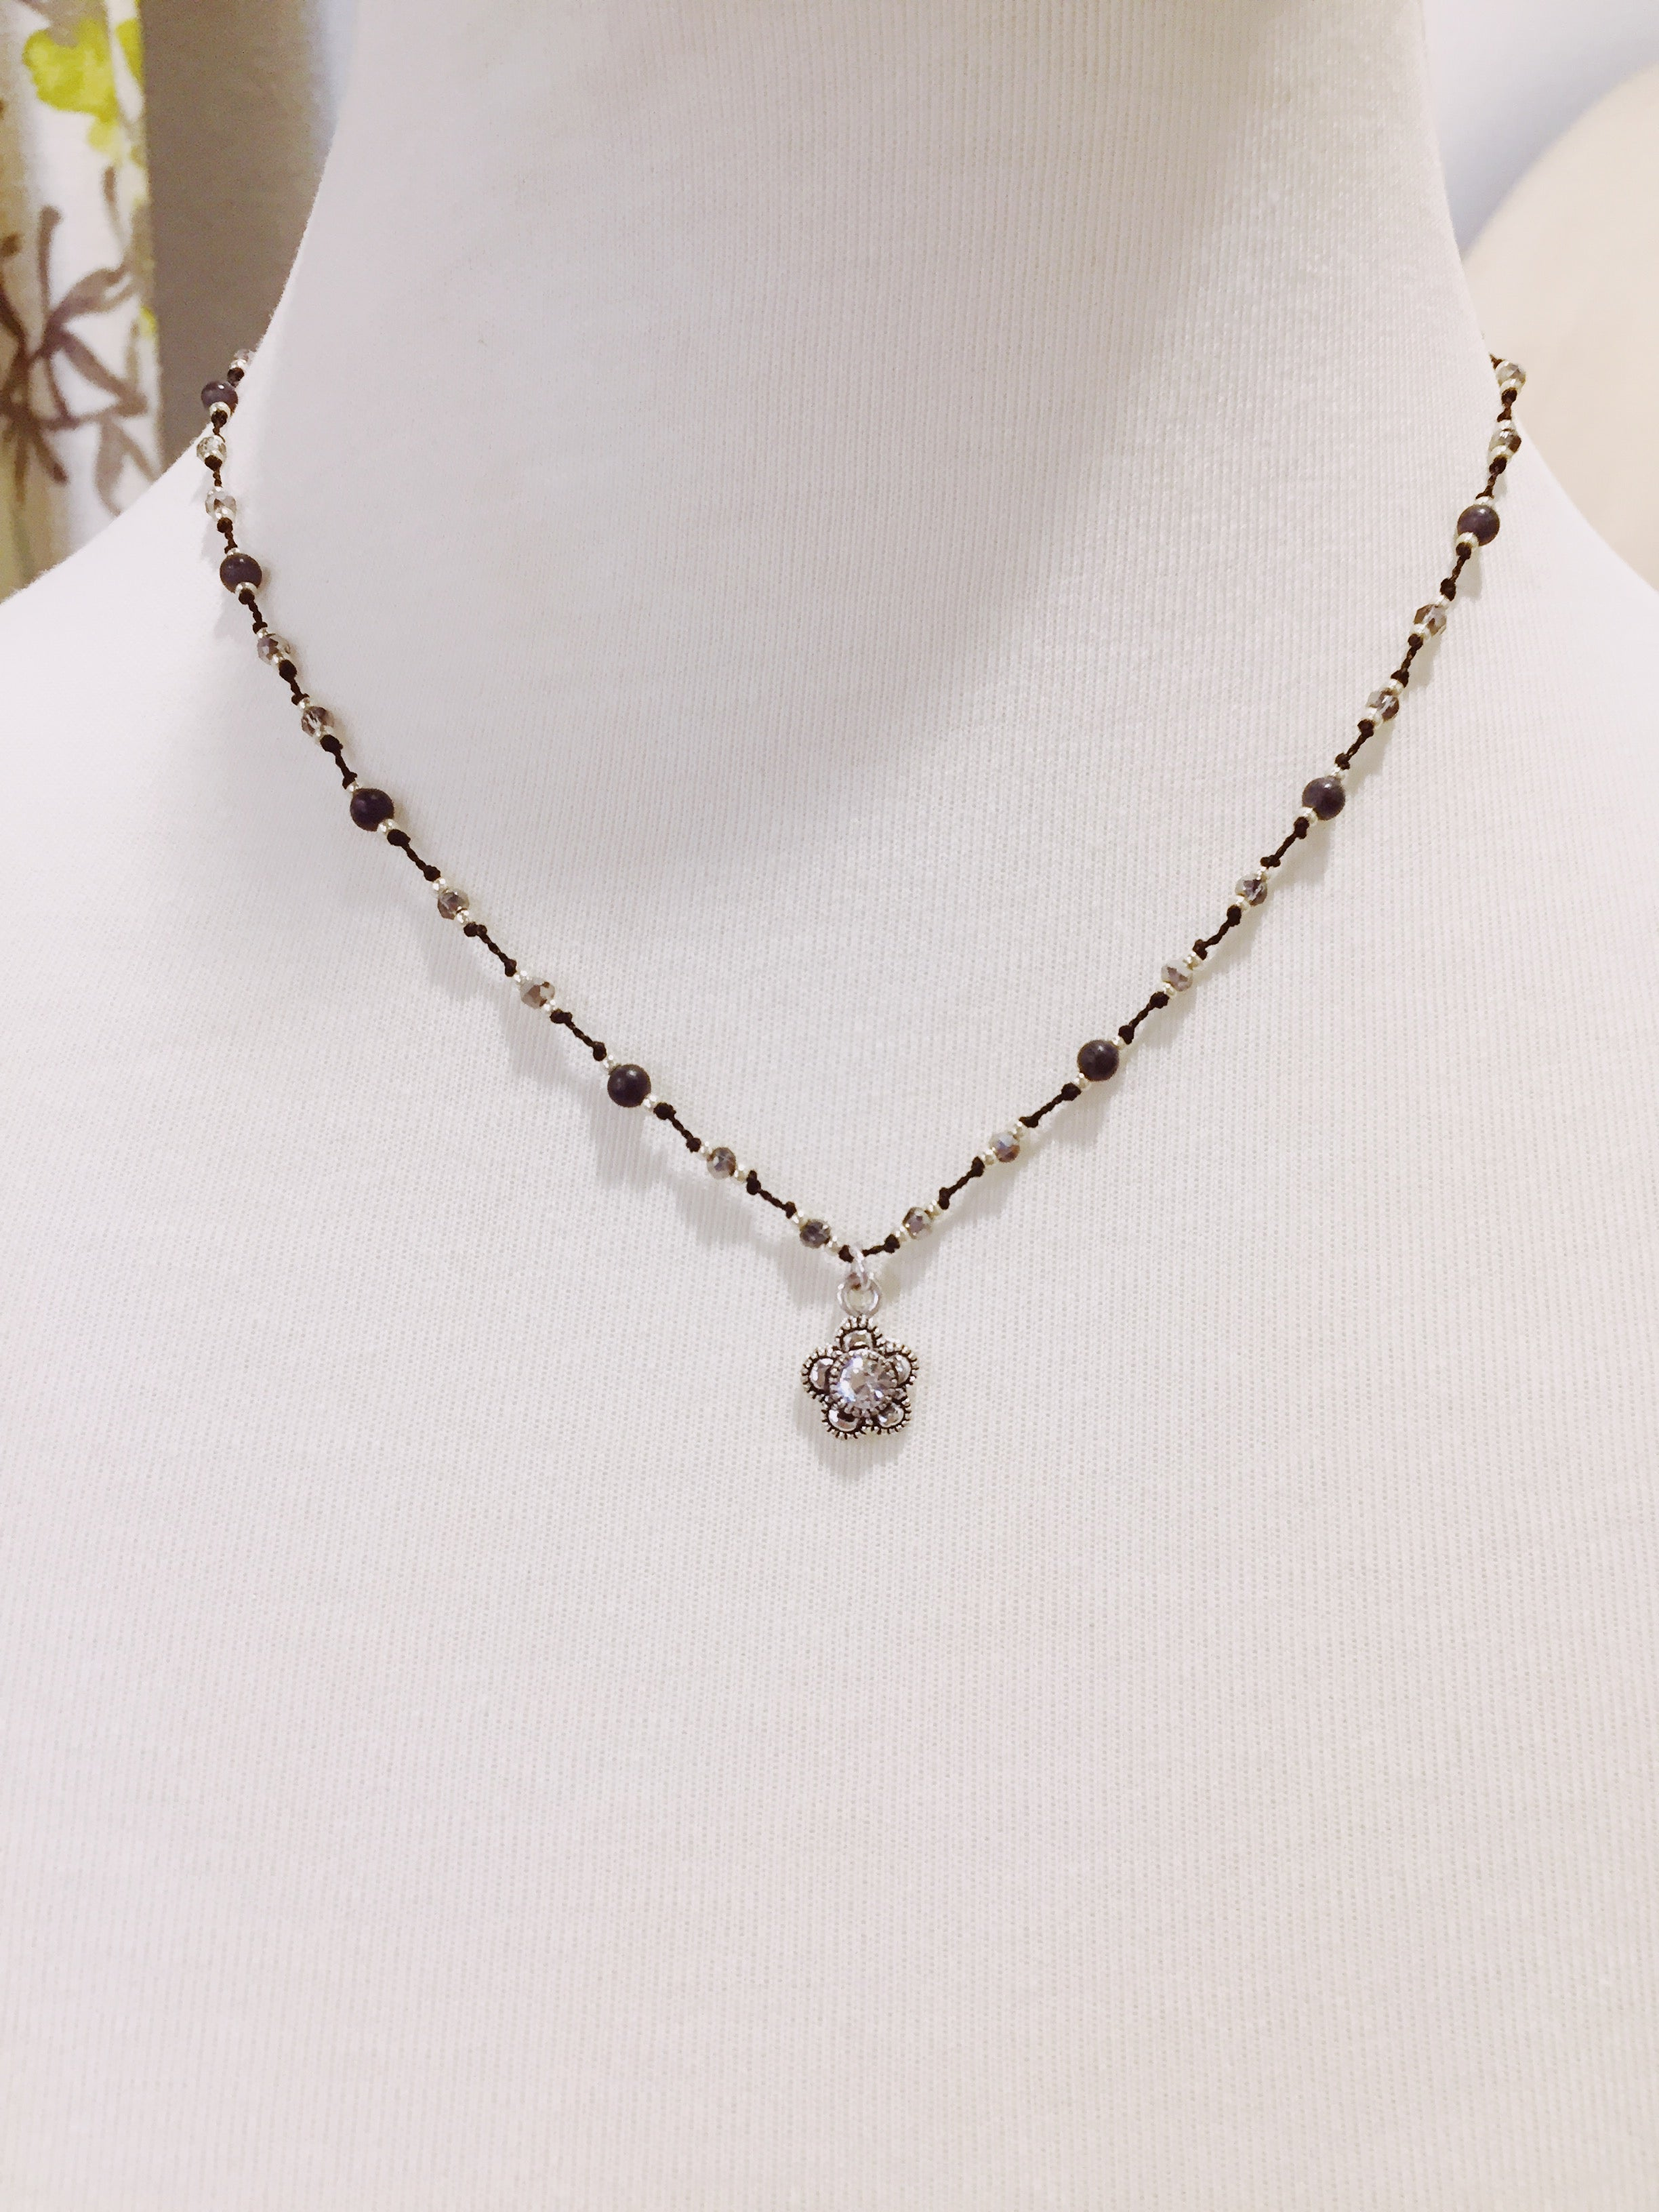 Black and Gray Crystal Necklace